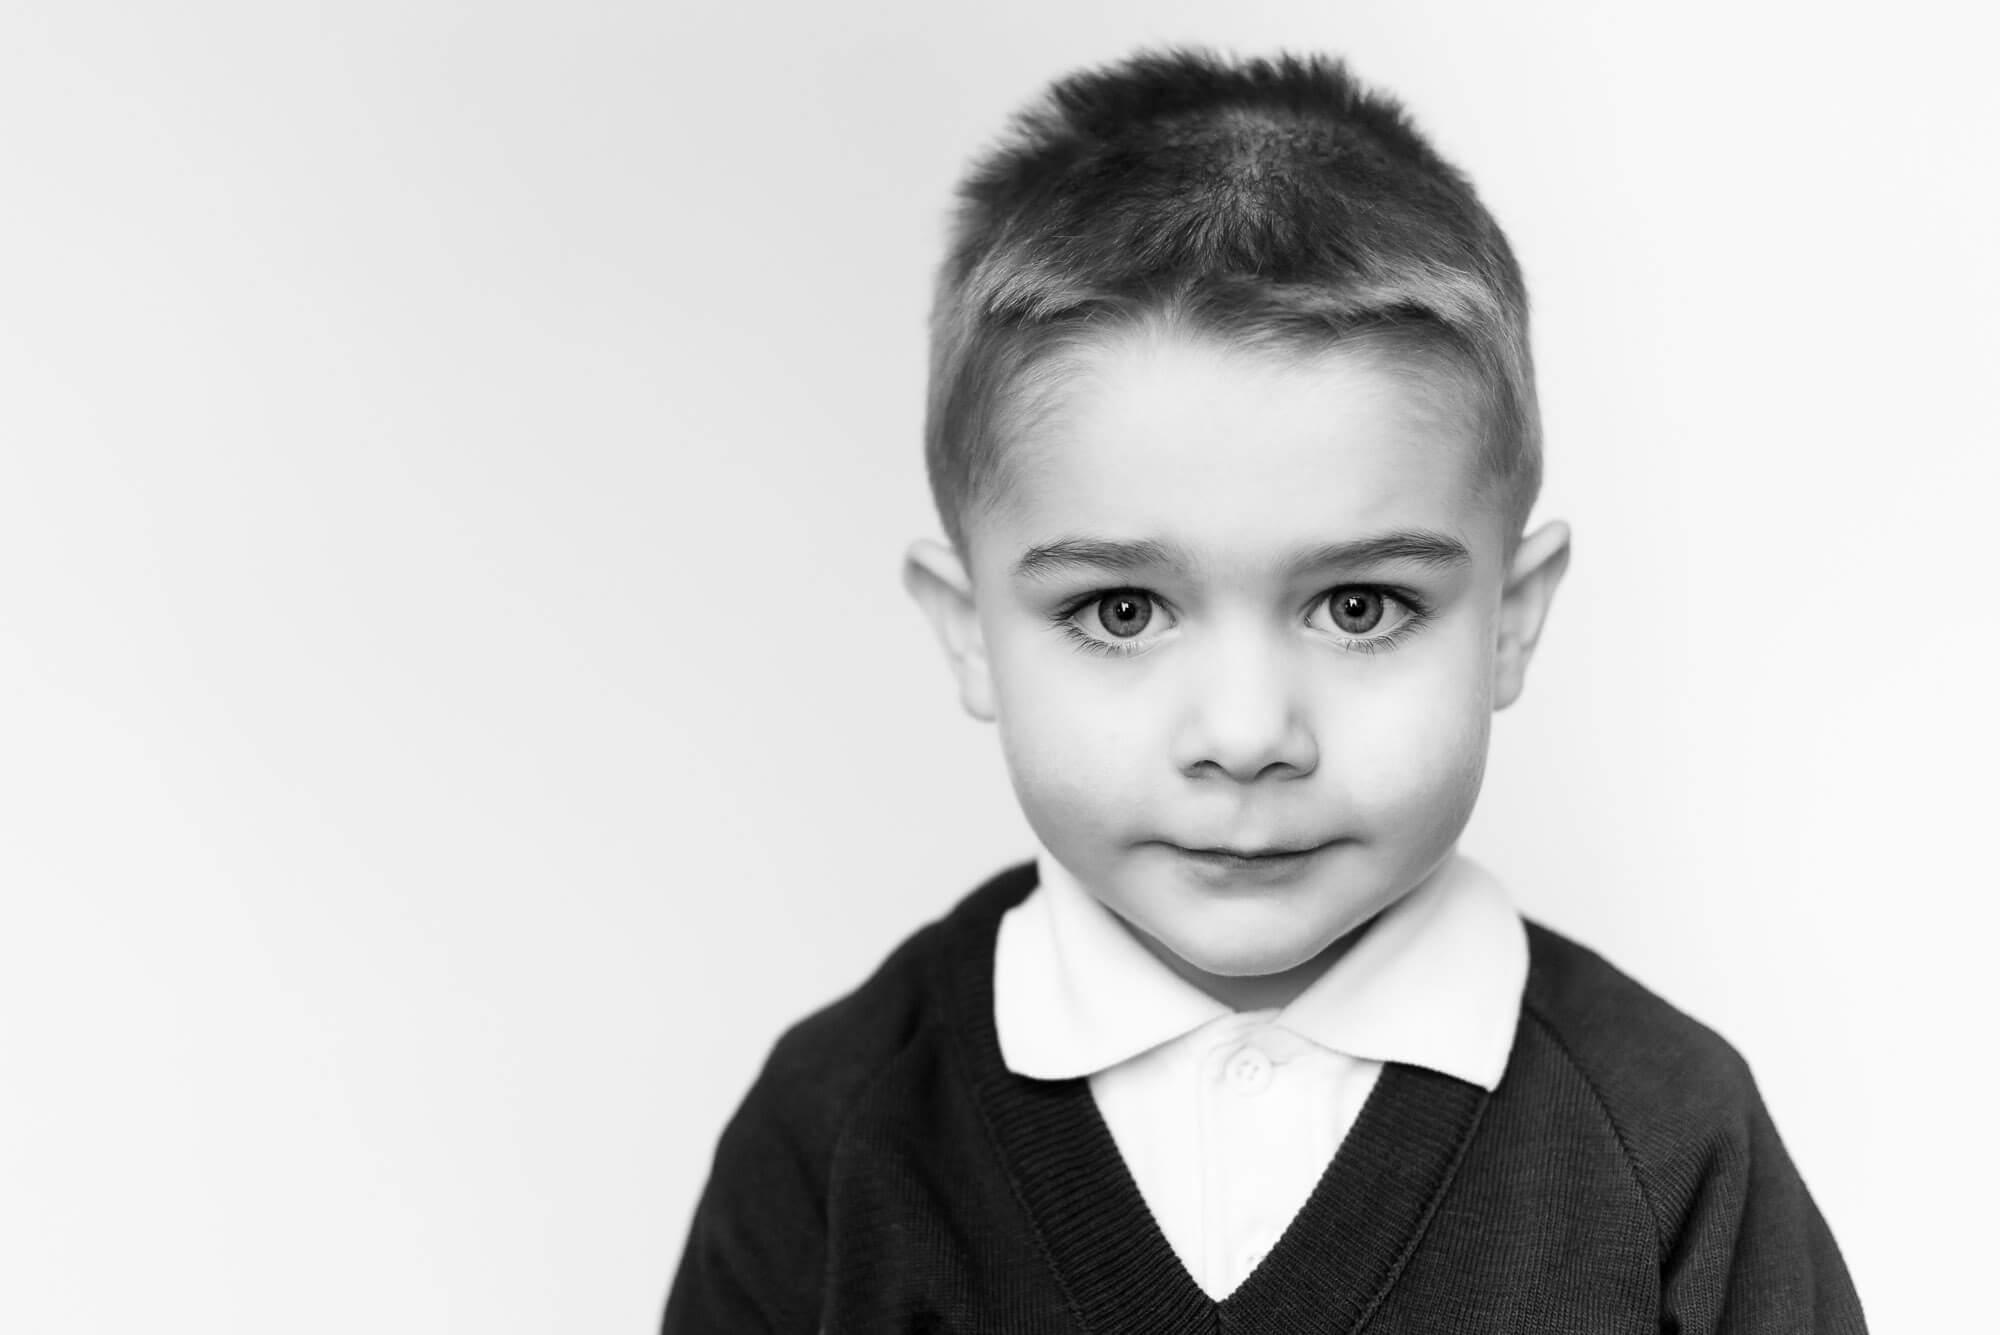 modern school photography boy with intense look